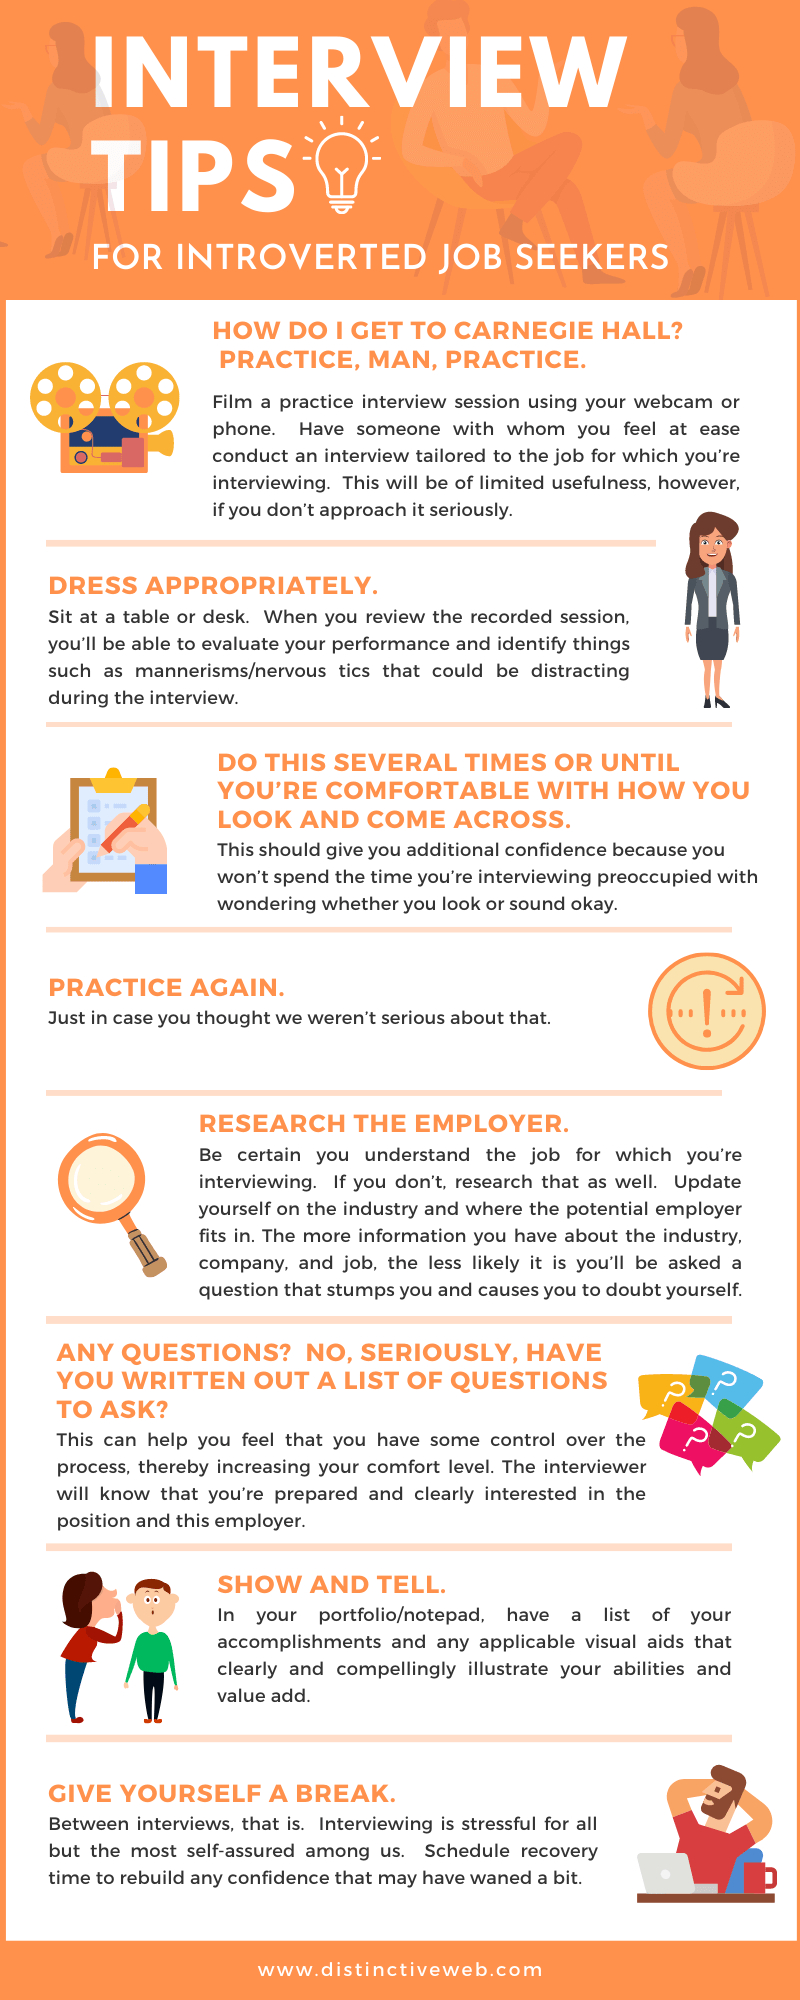 Interview Tips For Introverted Job Seekers